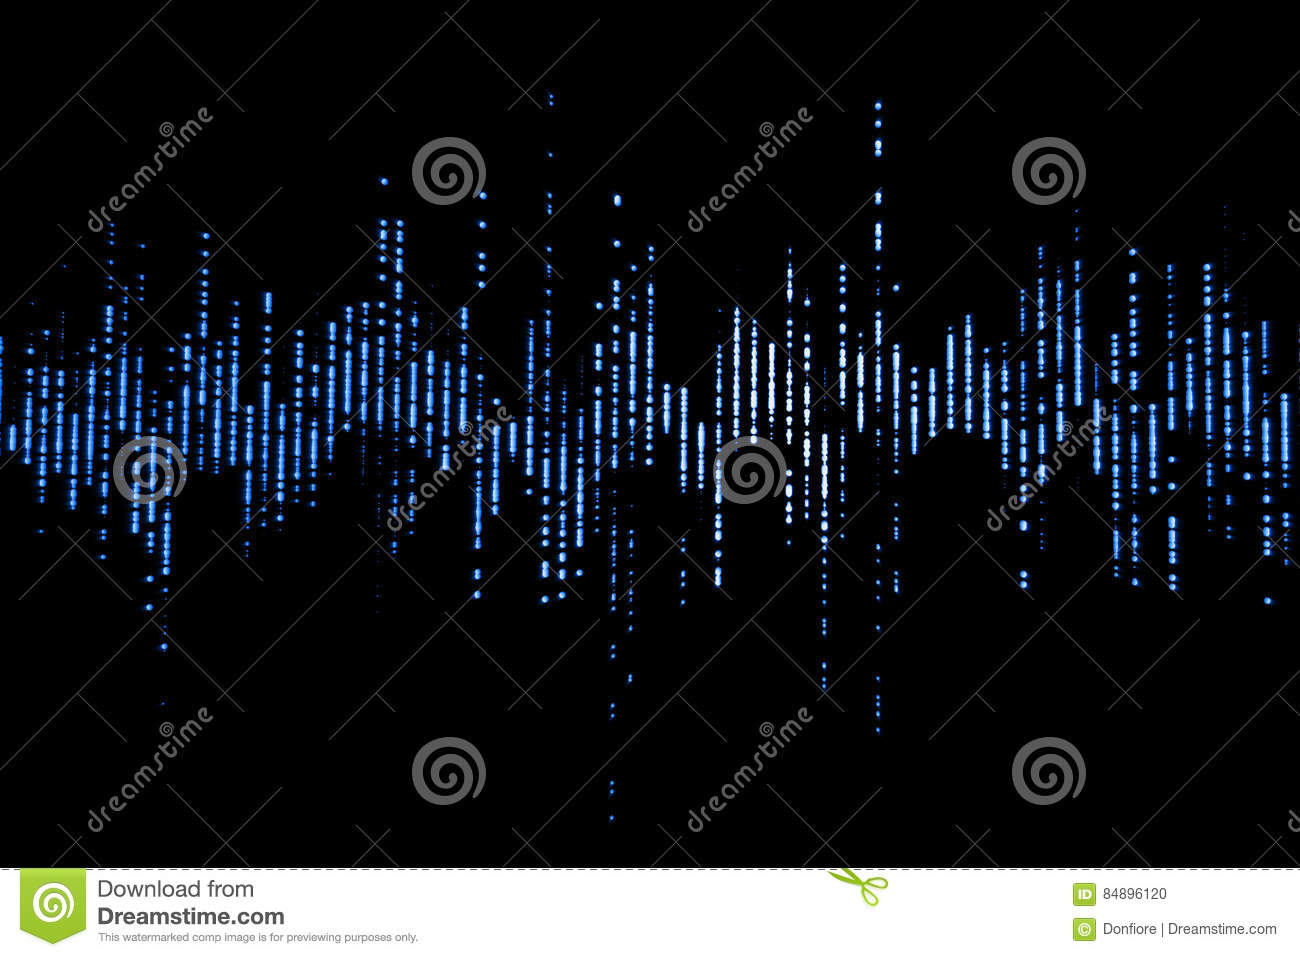 Blue digital equalizer audio sound waves on black background, stereo sound effect signal